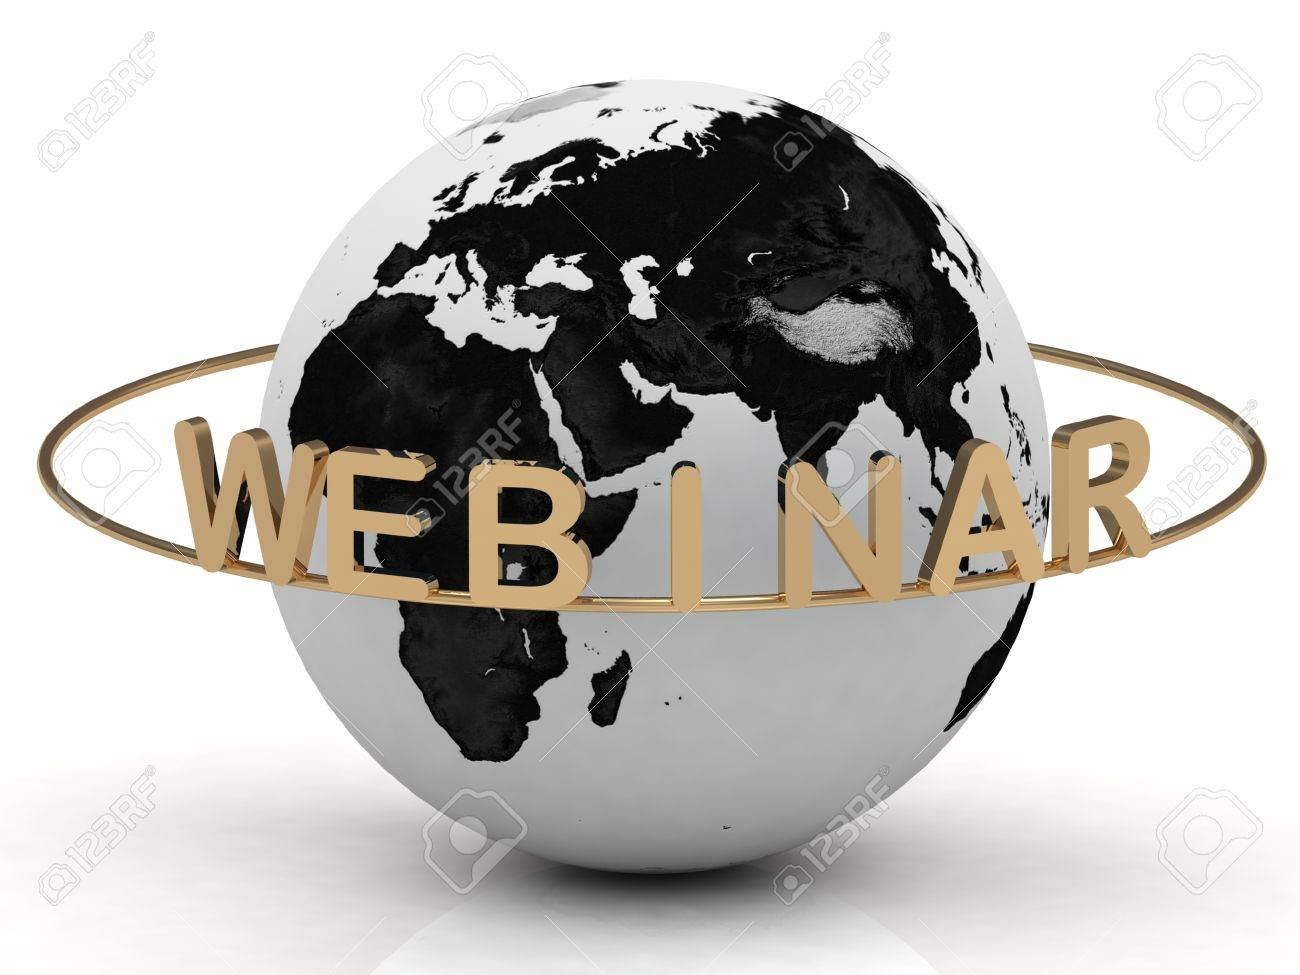 Gold Webinar and ring, abstraction of the inscription around the earth on a white background Stock Photo - 14618880